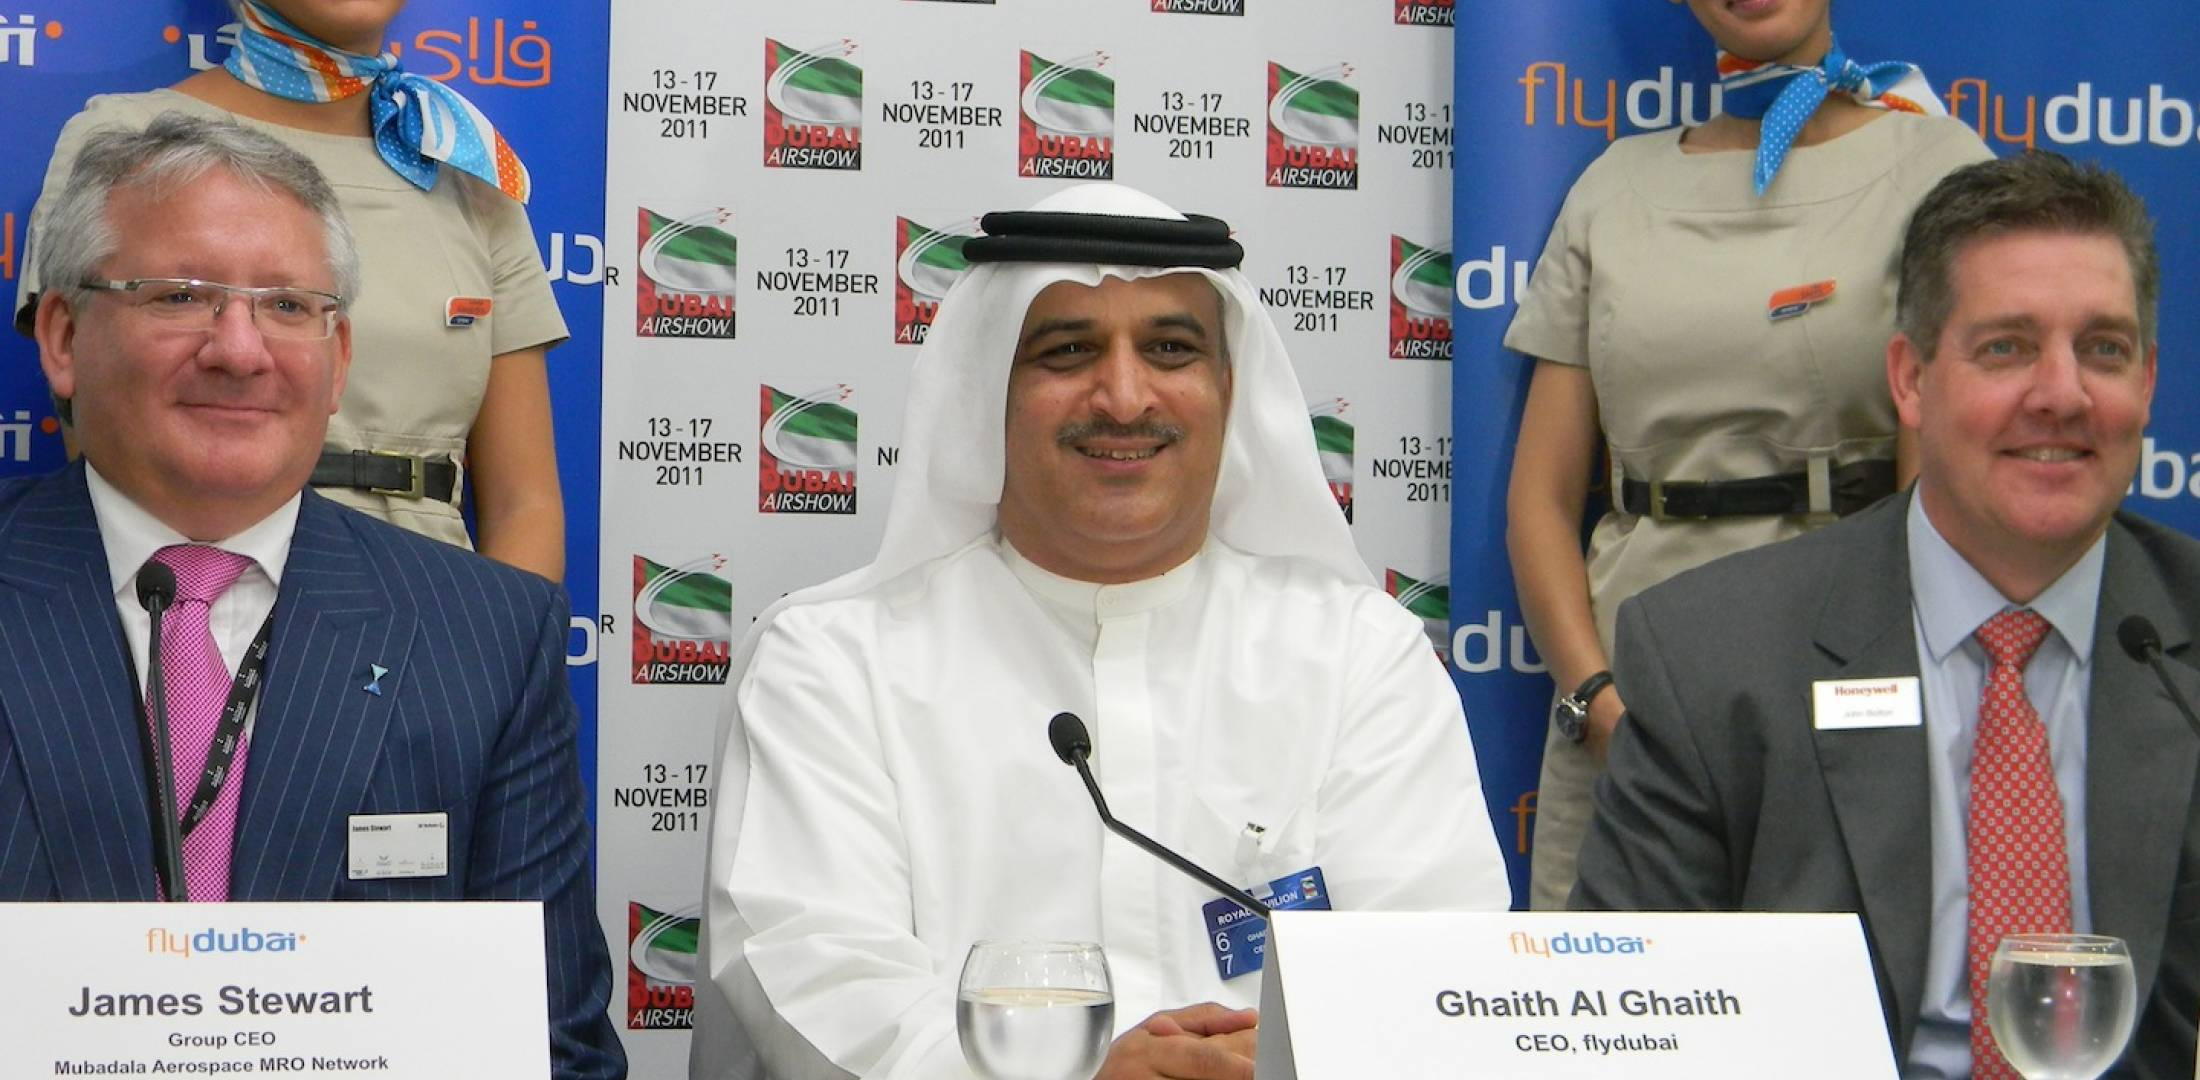 Flydubai CEO Ghaith Al Ghaith, center, at Dubai Airshow press conference.